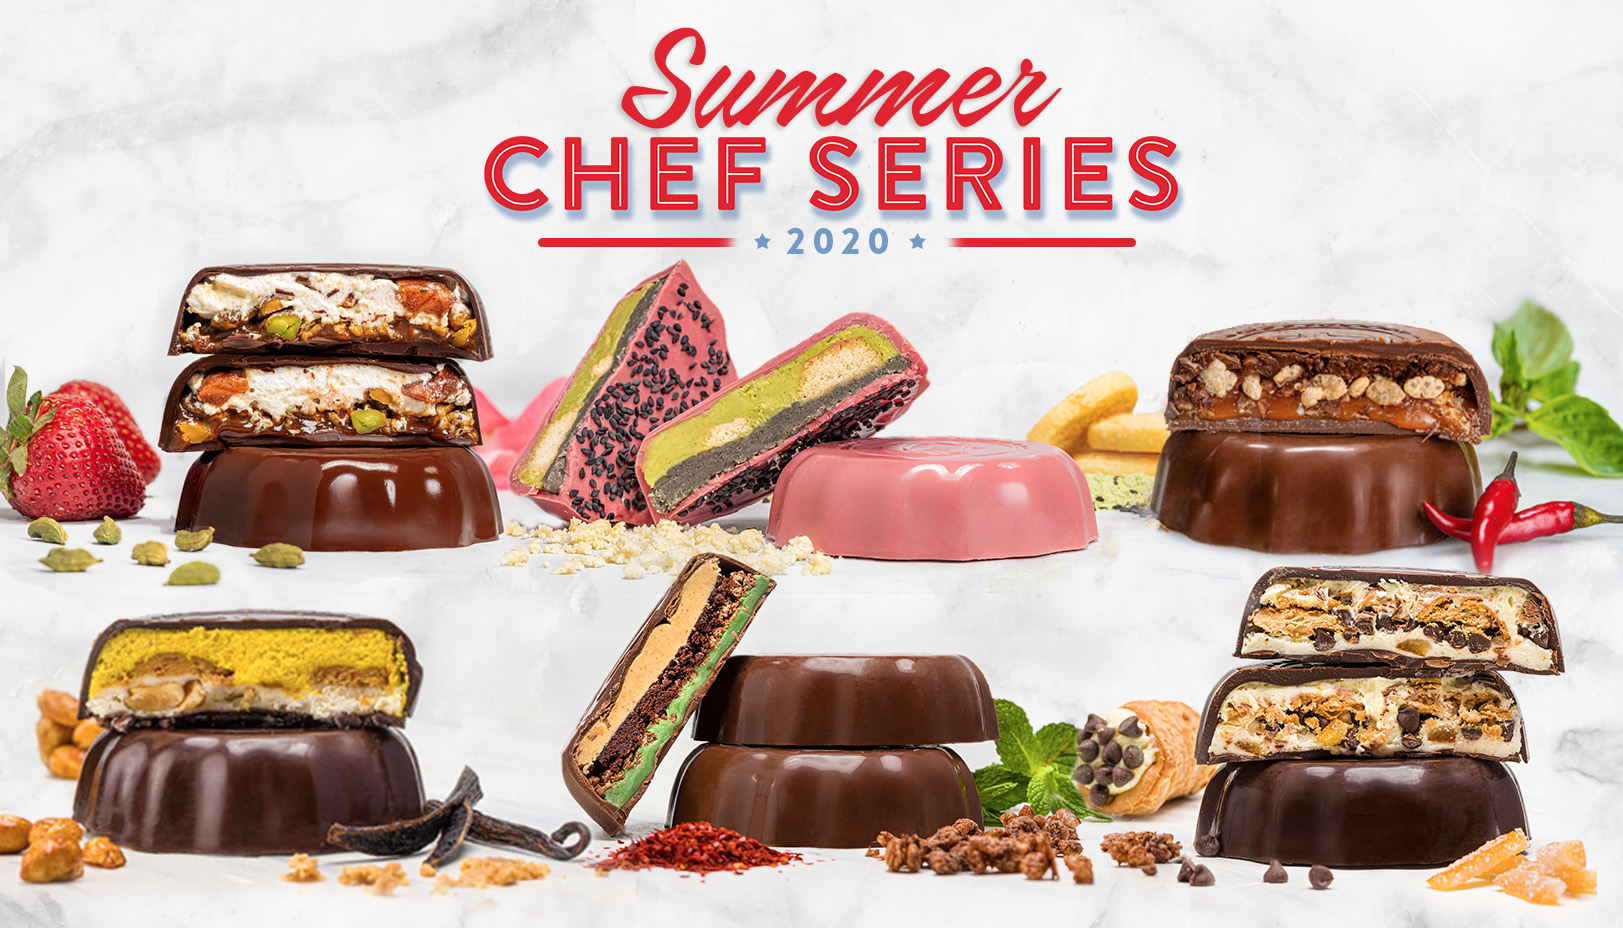 Summer Chef Series 2020 Image